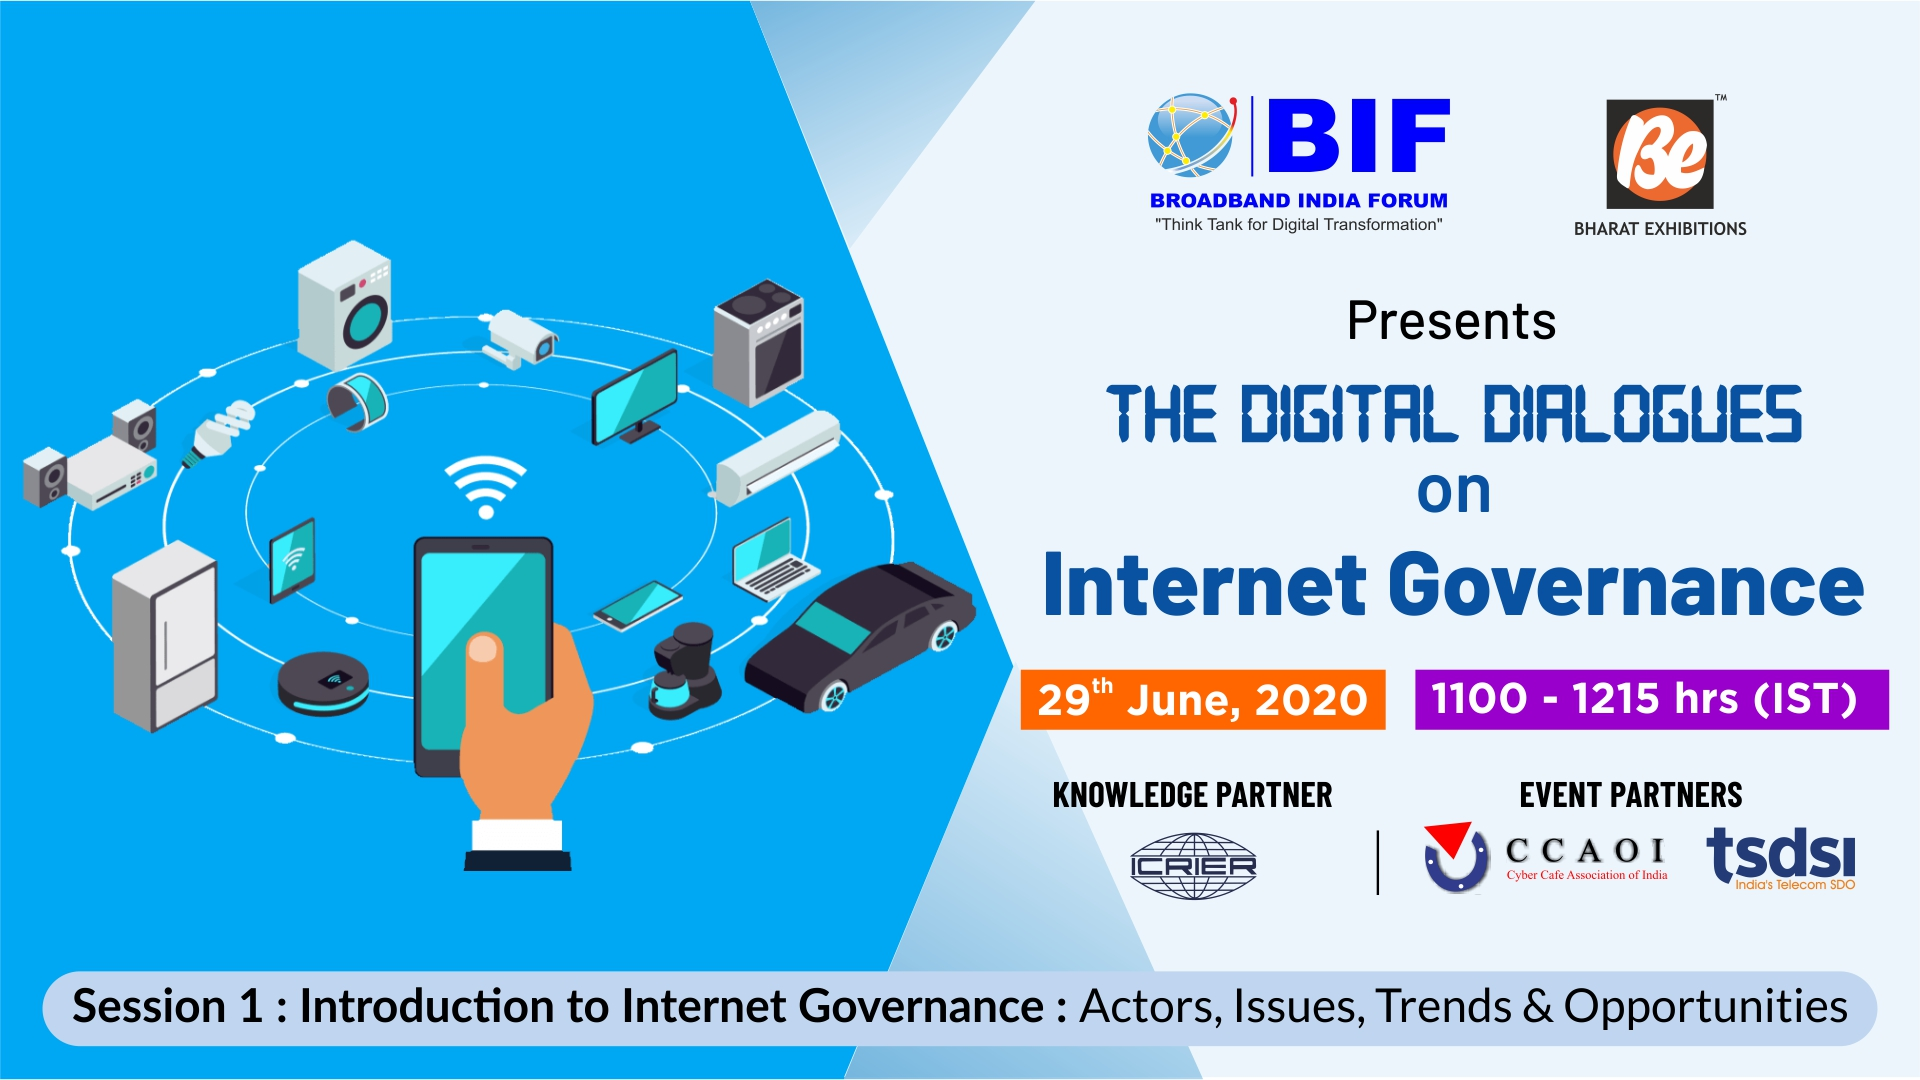 The Digital Dialogues series on Internet Governance - Session 1 - 29th June, 2020